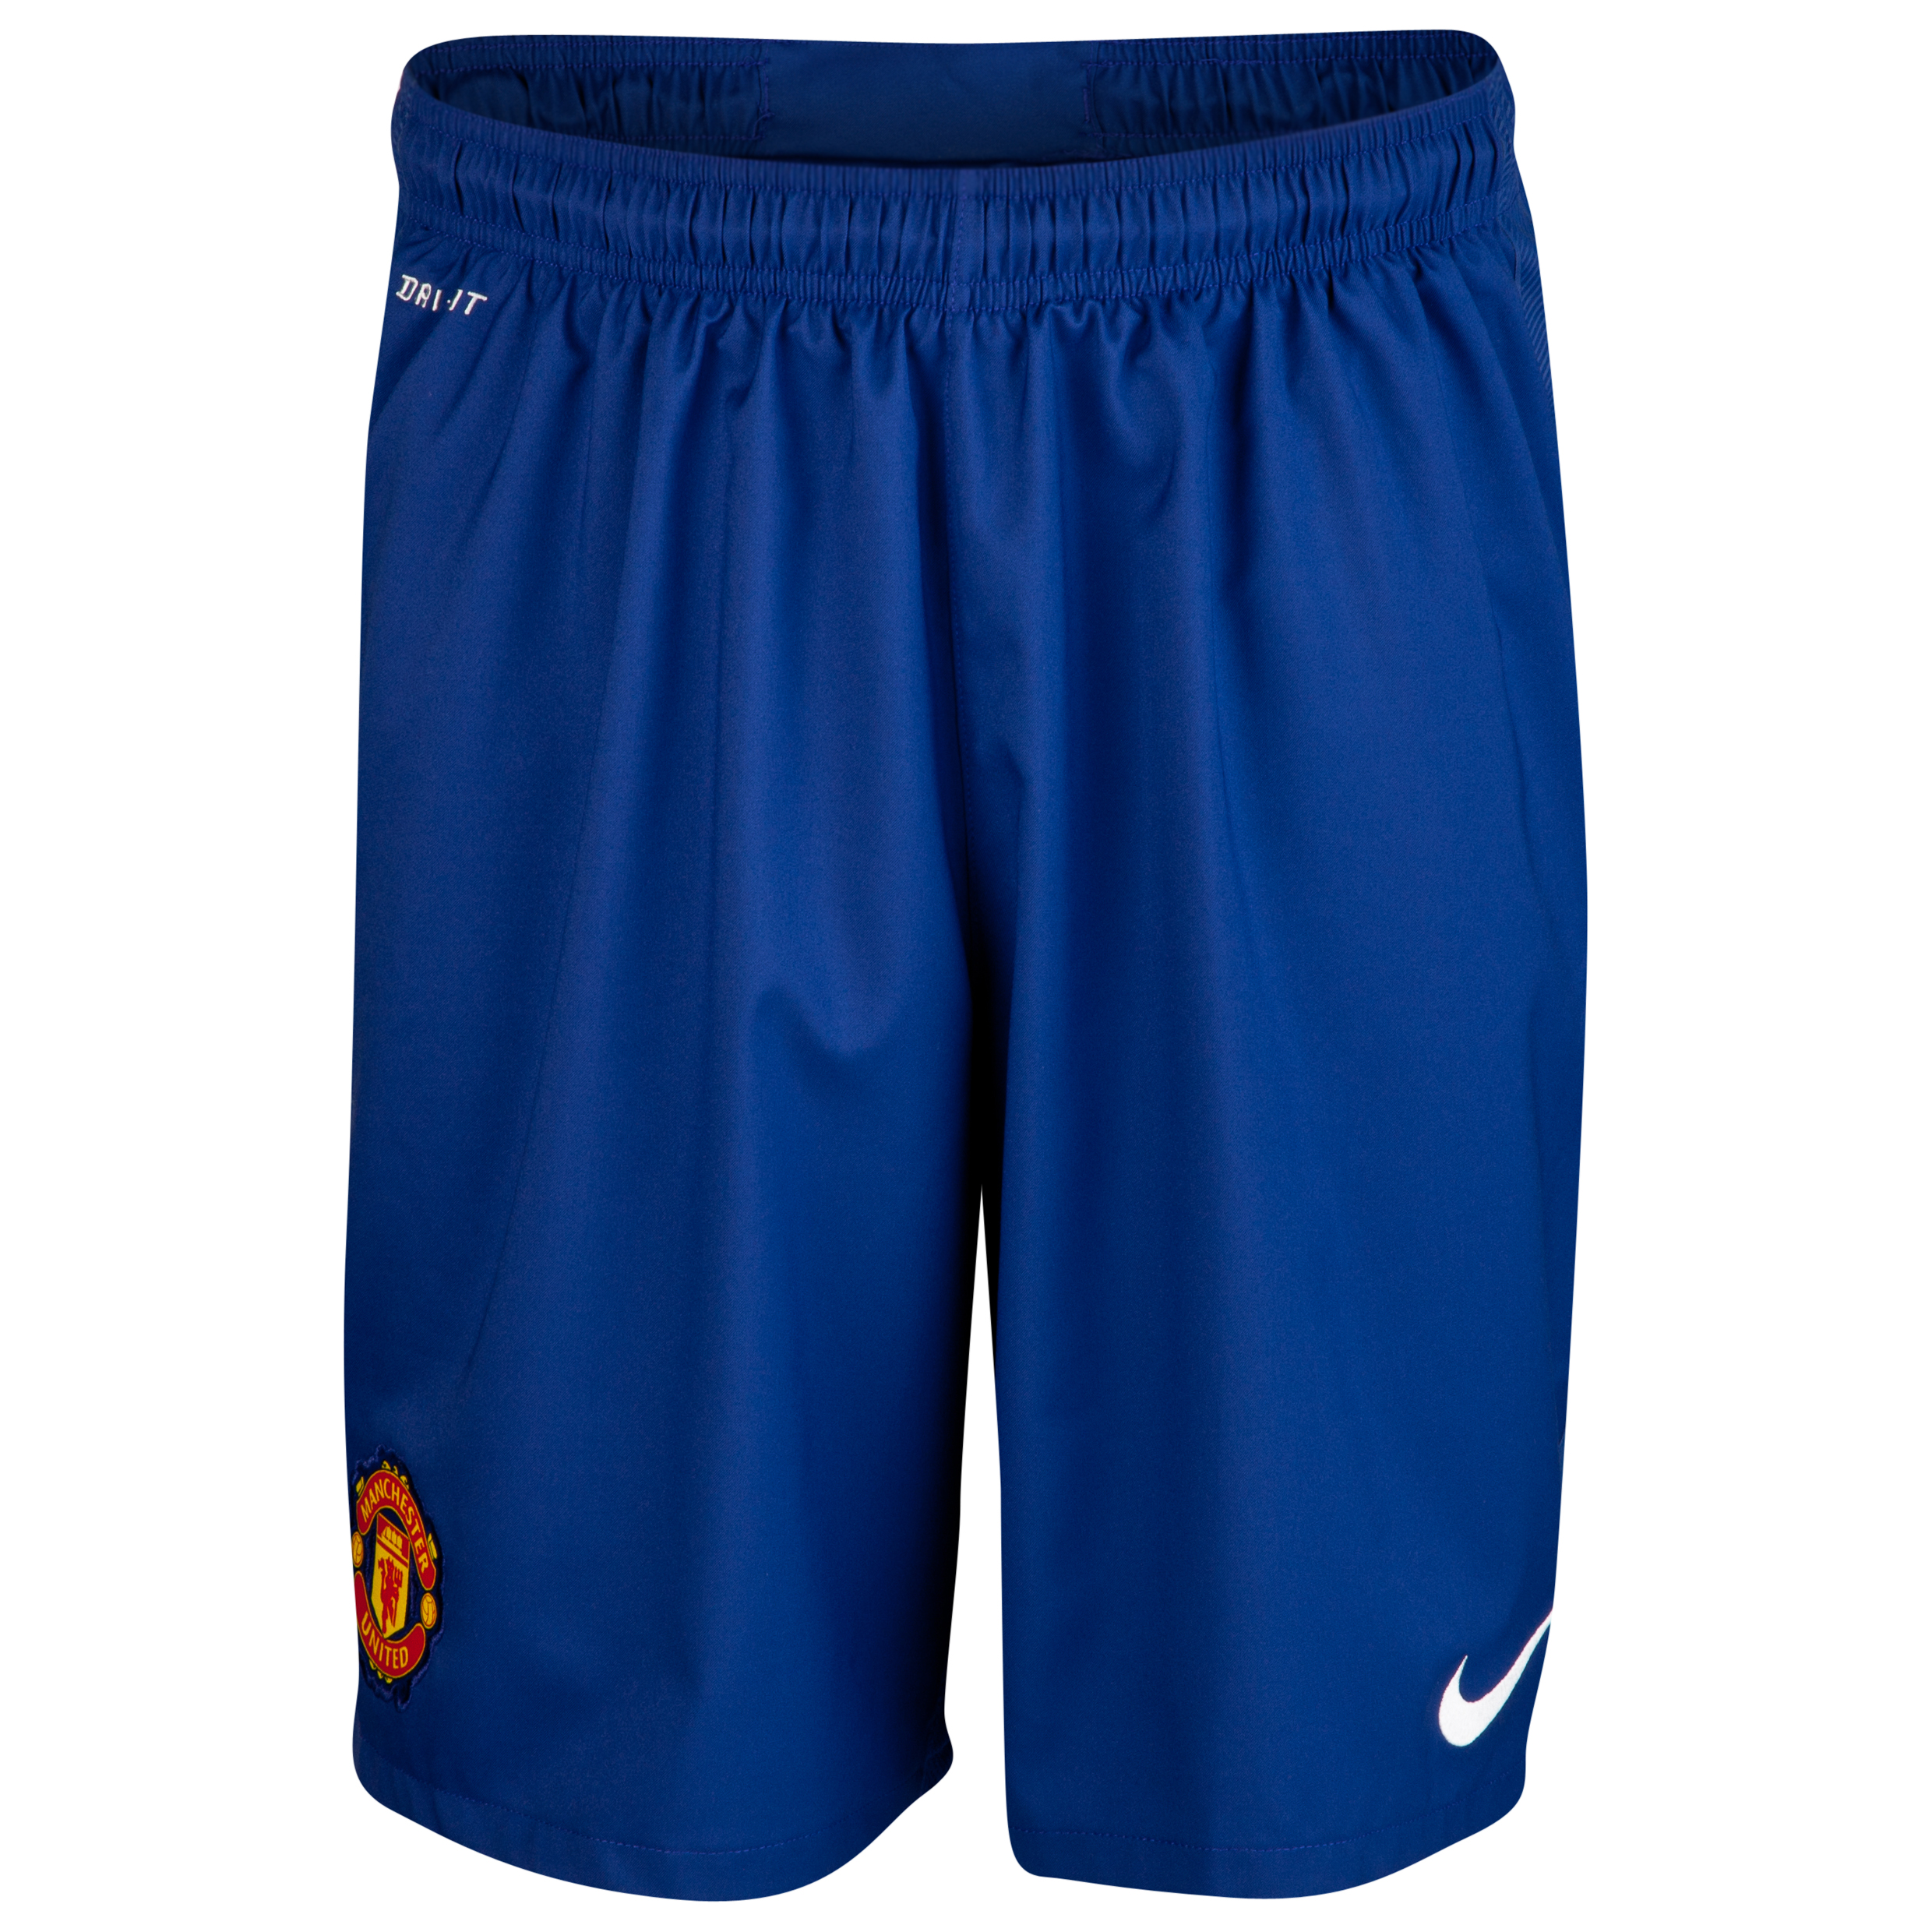 Manchester United Away Goalkeeper Short 2012/13